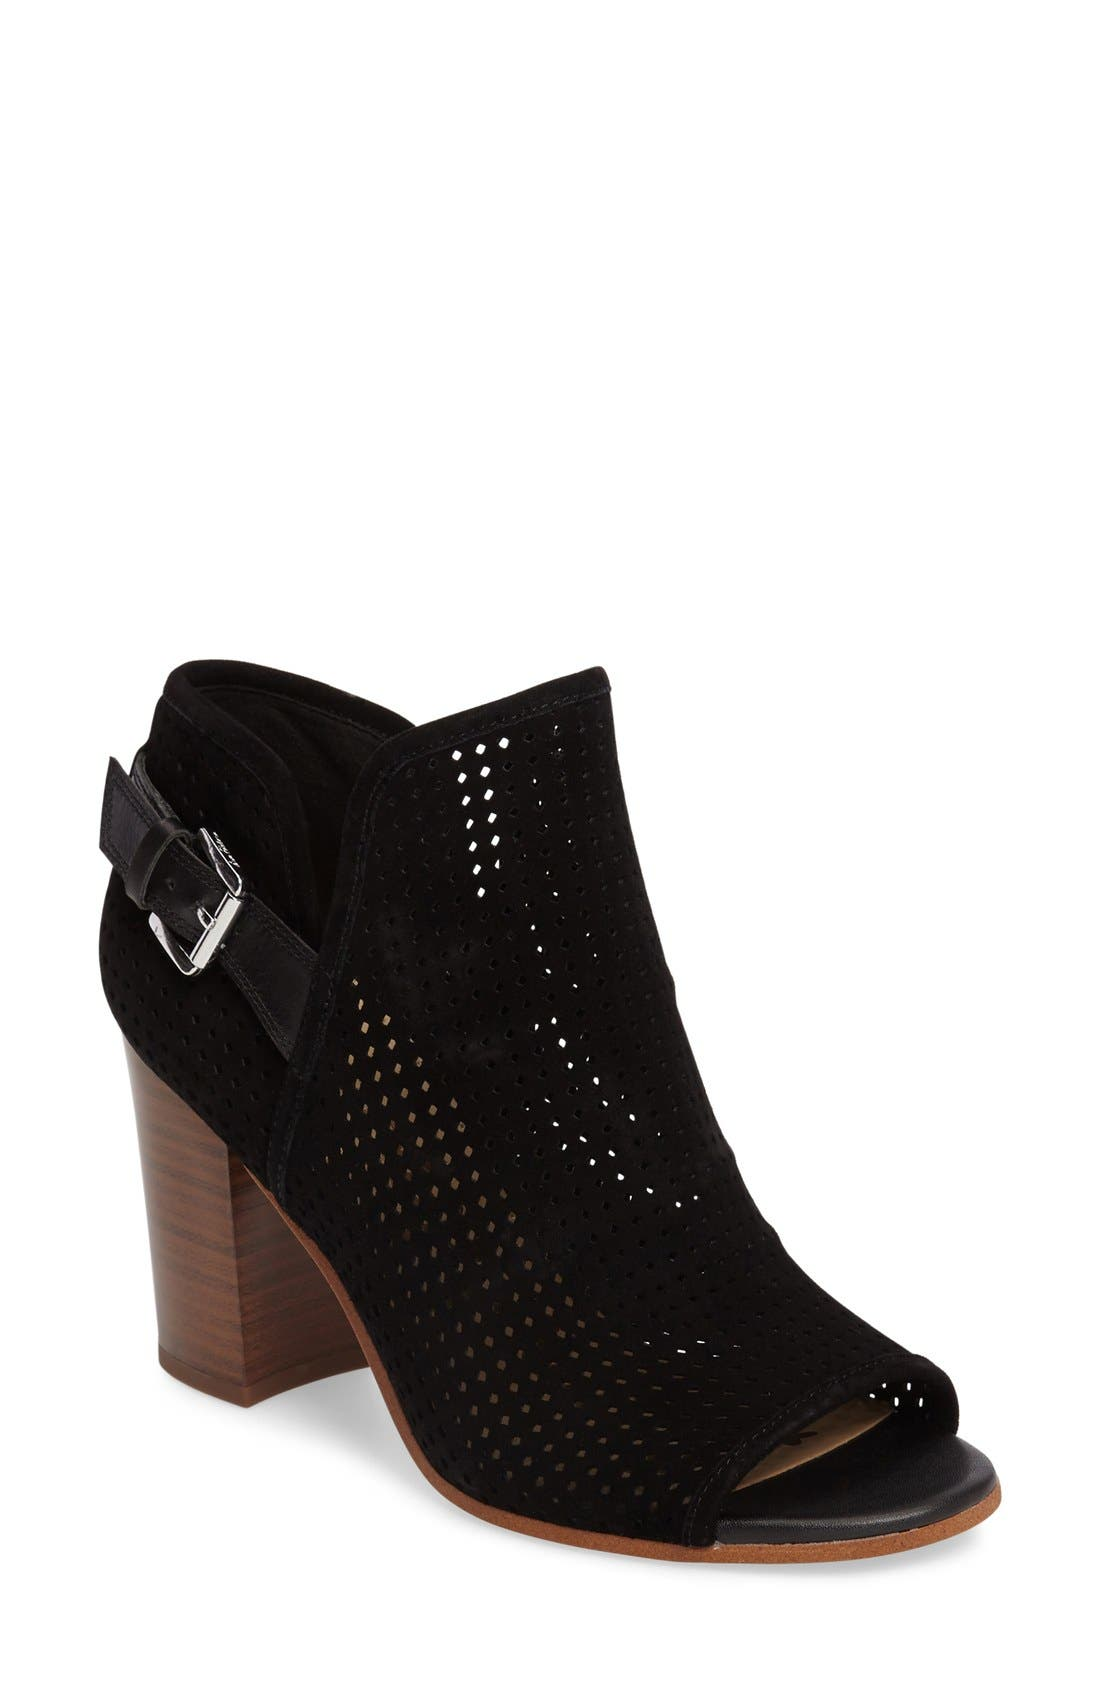 SAM EDELMAN Easton Perforated Open Toe Bootie